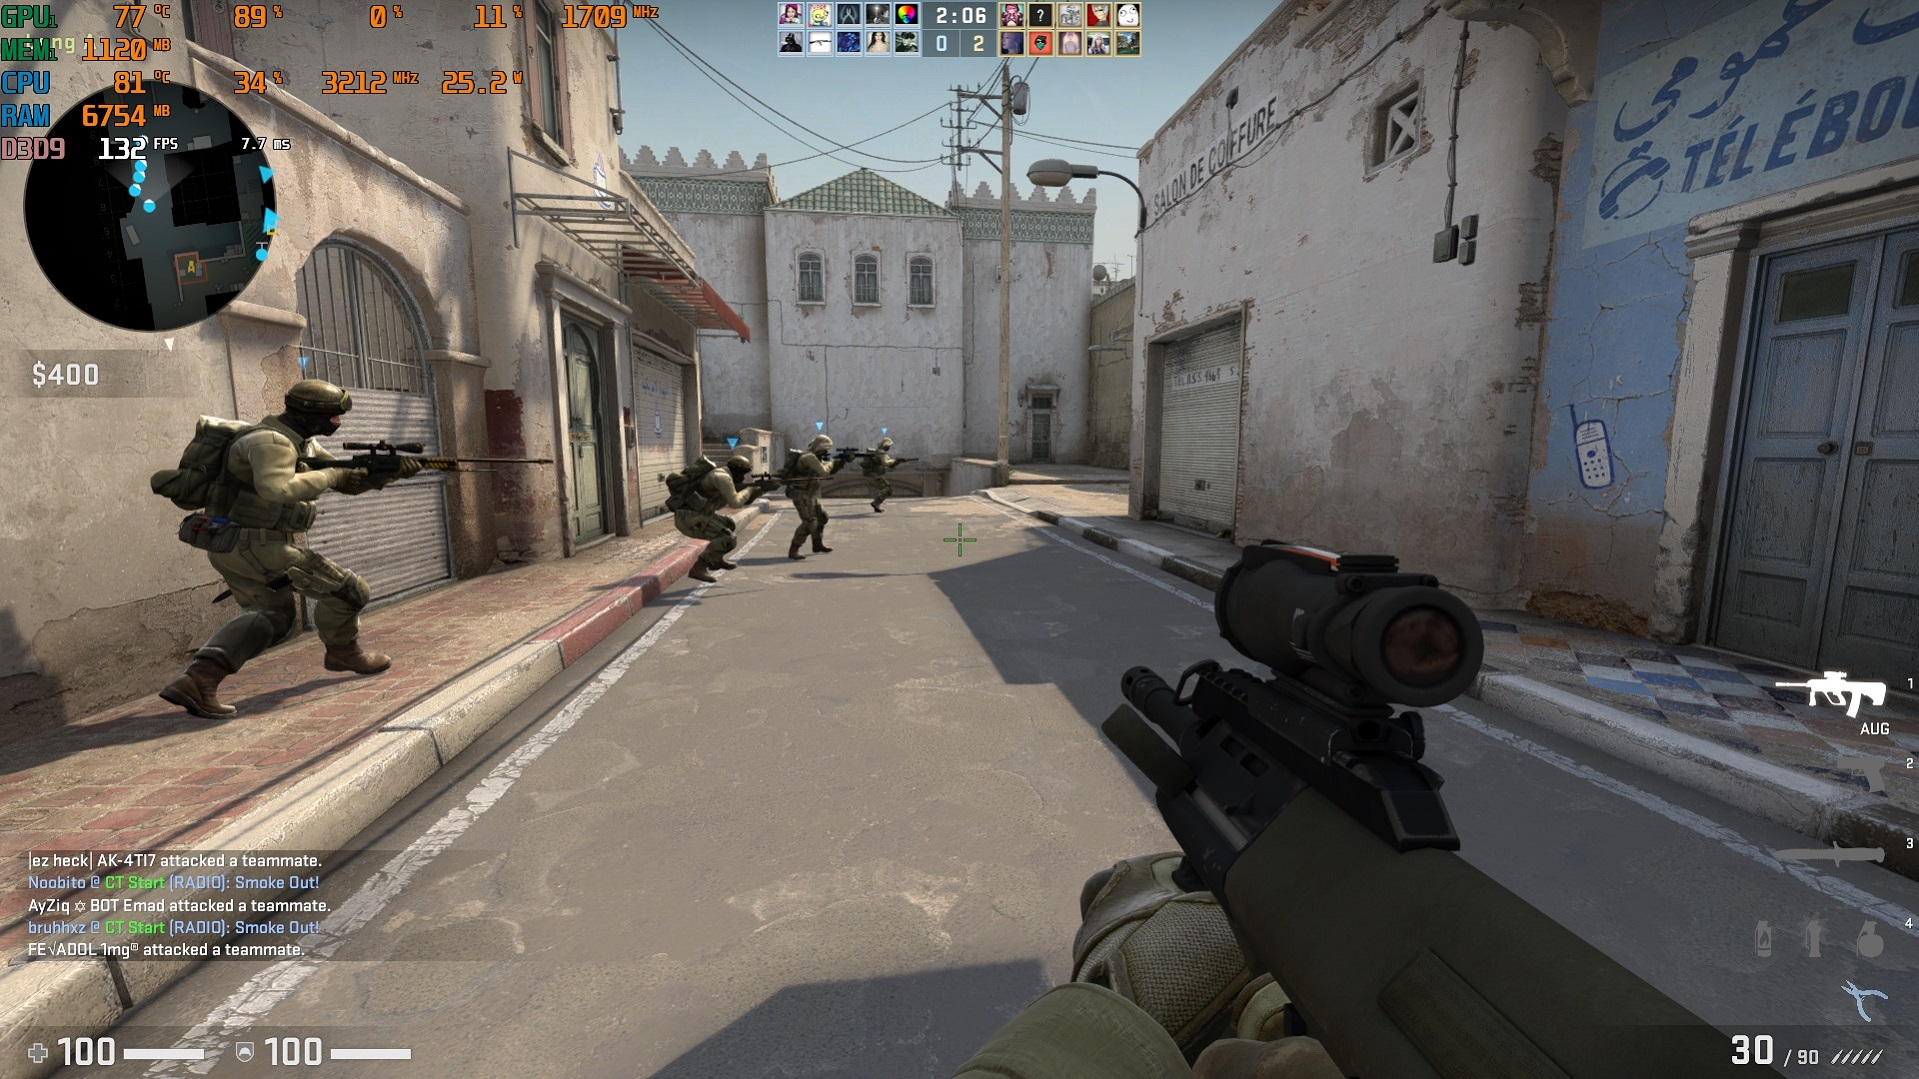 counter-strike-global-offensive-screenshot-jpg.9000